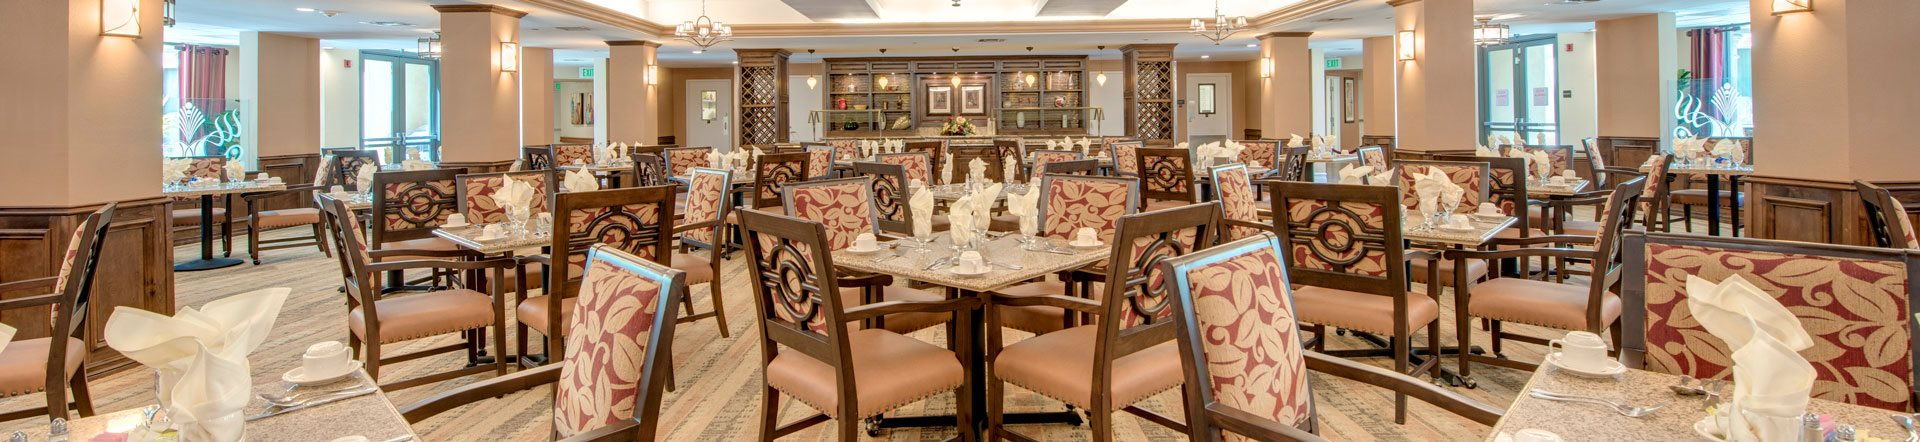 Restaurant-style Dining at Pacifica Senior Living Hillsborough, Chino, 91710